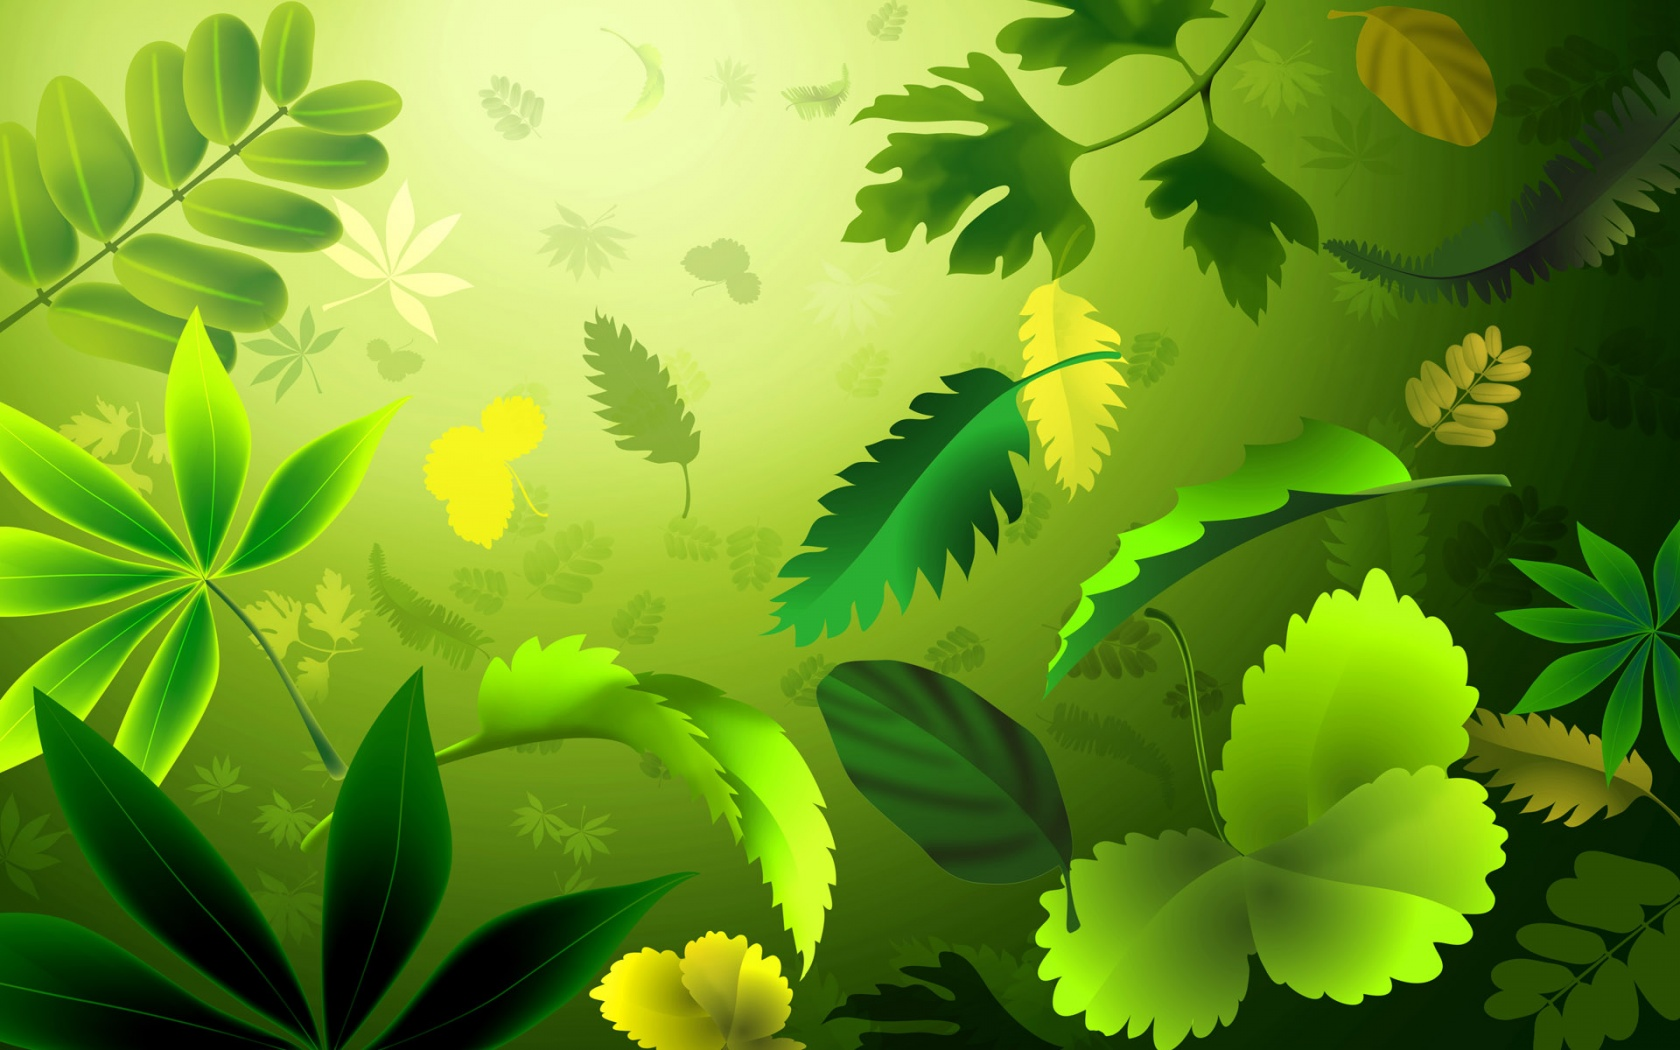 Green Leafs Wallpapers HD Wallpapers 1680x1050